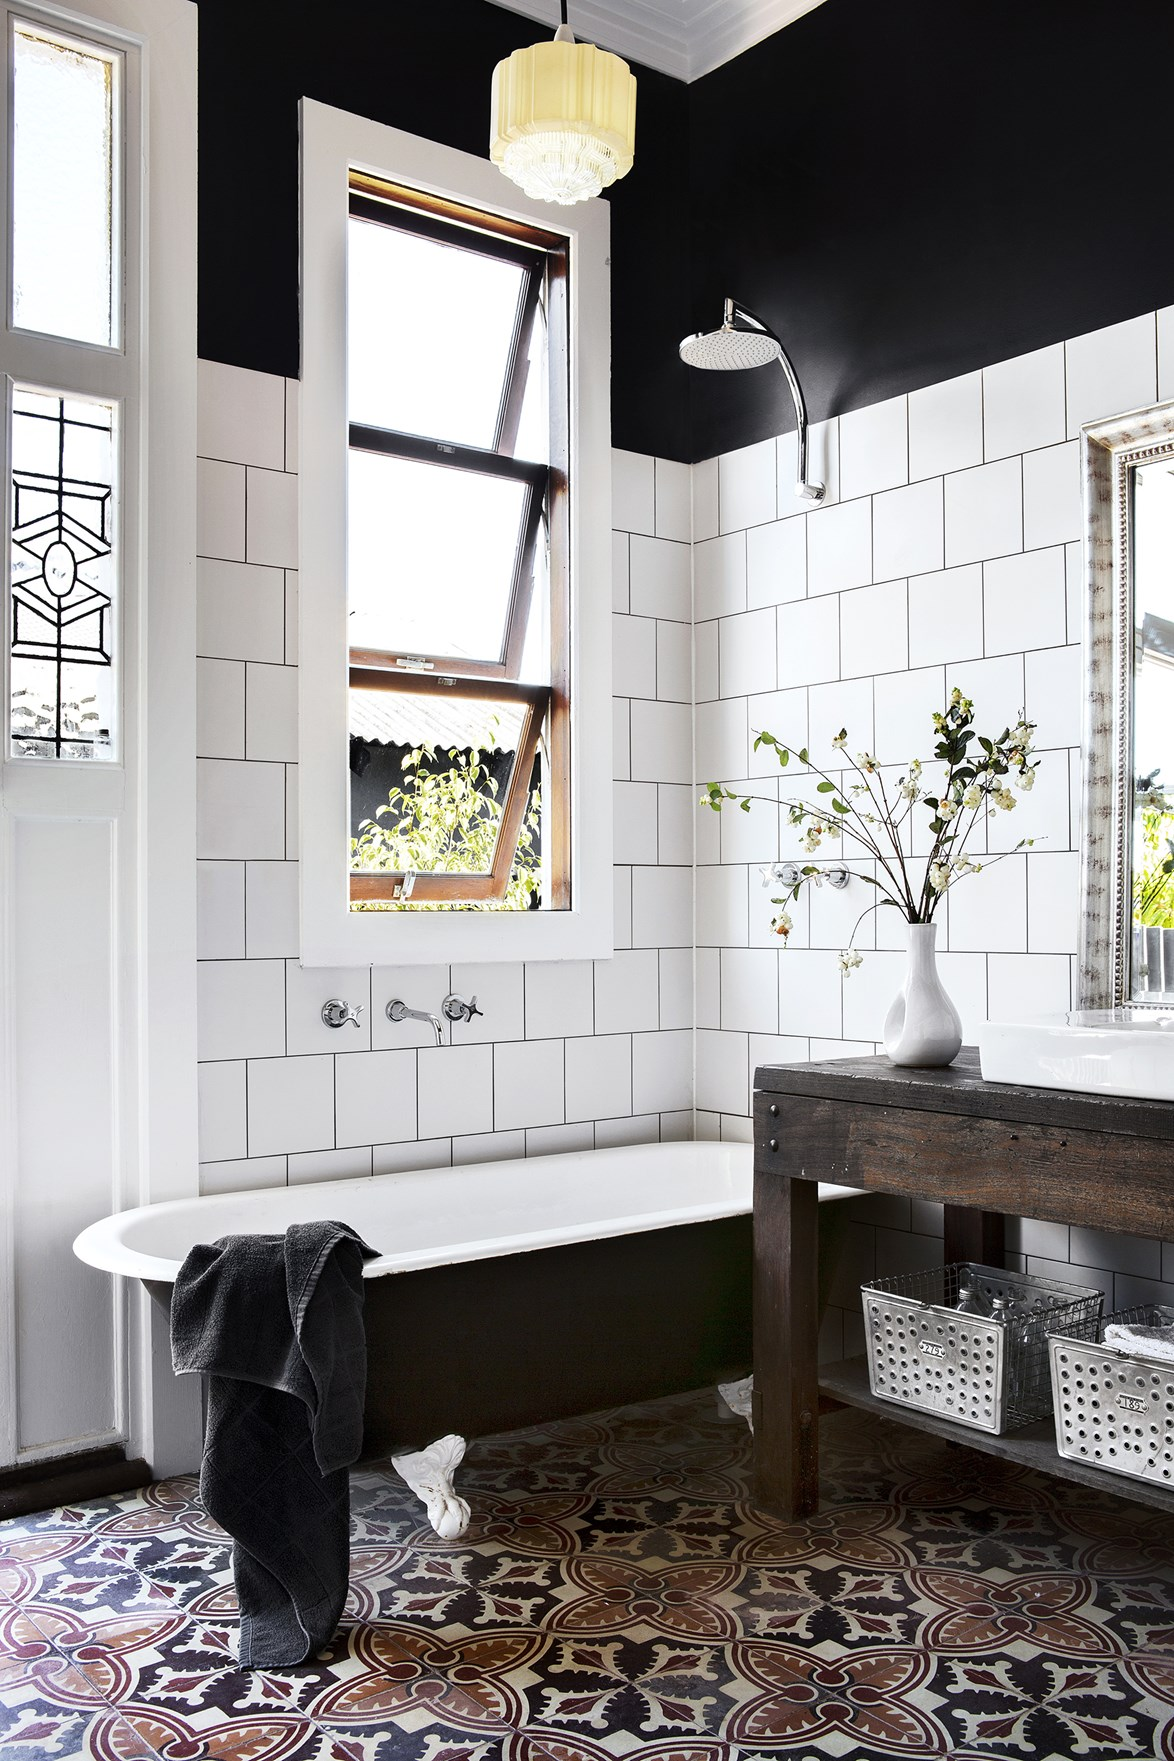 "You could be forgiven for thinking that this is a restored bathroom in a heritage home, but it's actually a [new build created from recycled and re-purposed materials](https://www.homestolove.com.au/gallery-carla-and-bens-art-deco-style-new-house-1798|target=""_blank""). A mix of modern and vintage pieces give the home it's country meets art-deco flair. *Photo: Angelita Bonetti / Styling: Kate Nixon / Story: Australian House & Garden*"